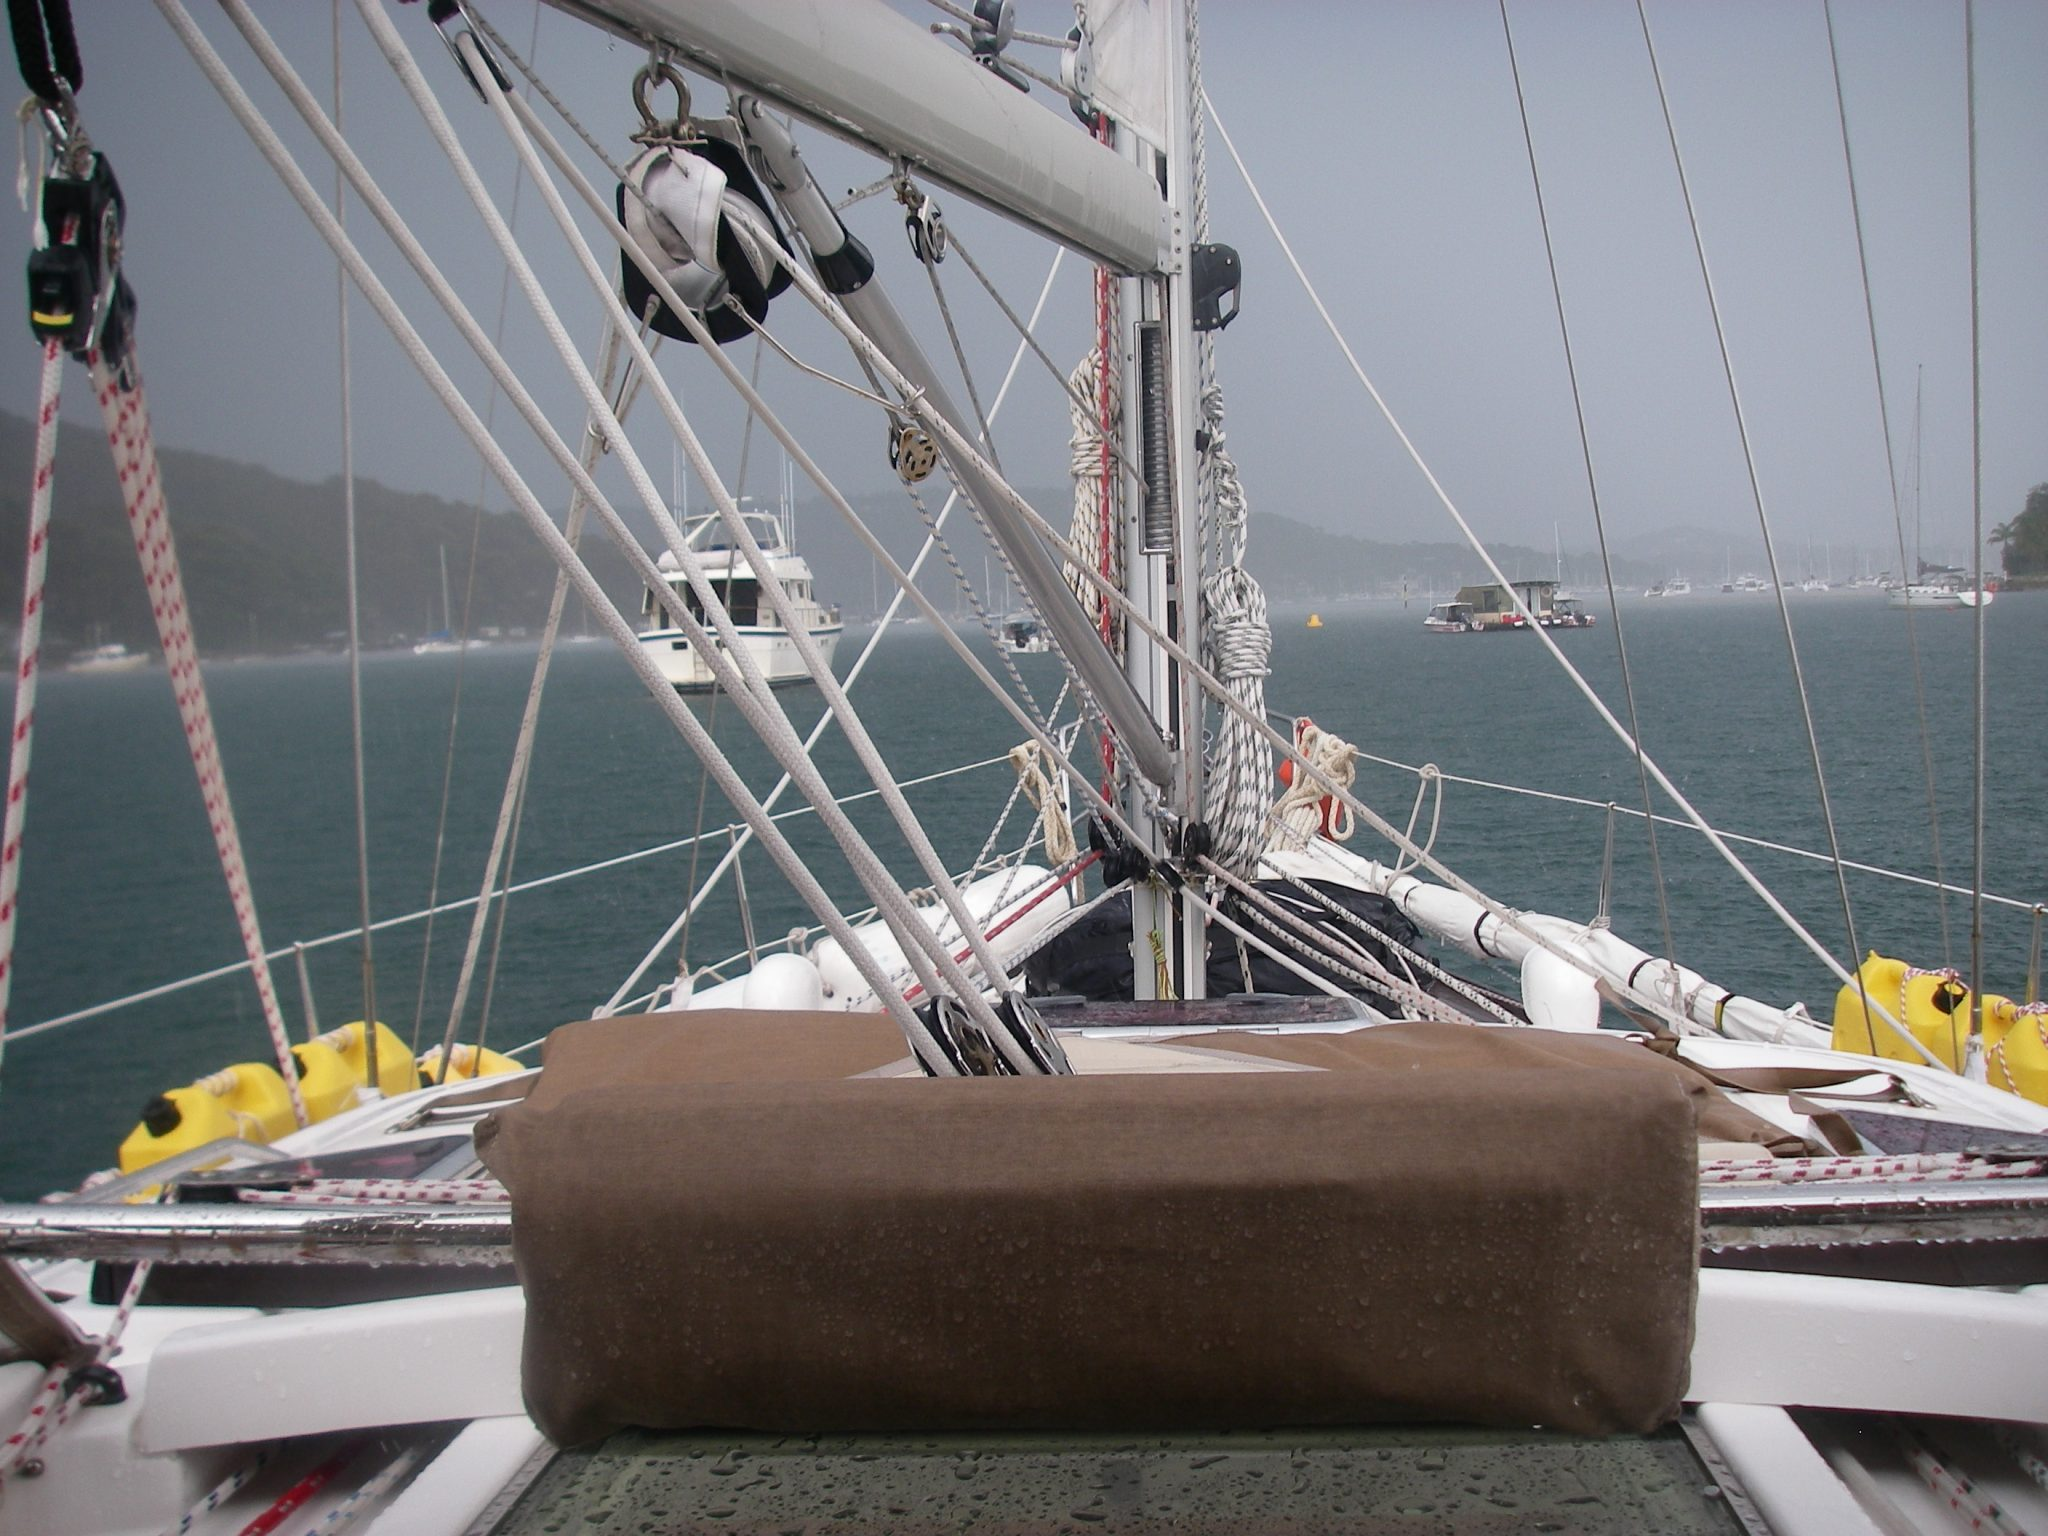 8. A sudden hailstorm pelted Joyful at her mooring in Pittwater, Australia.JPG